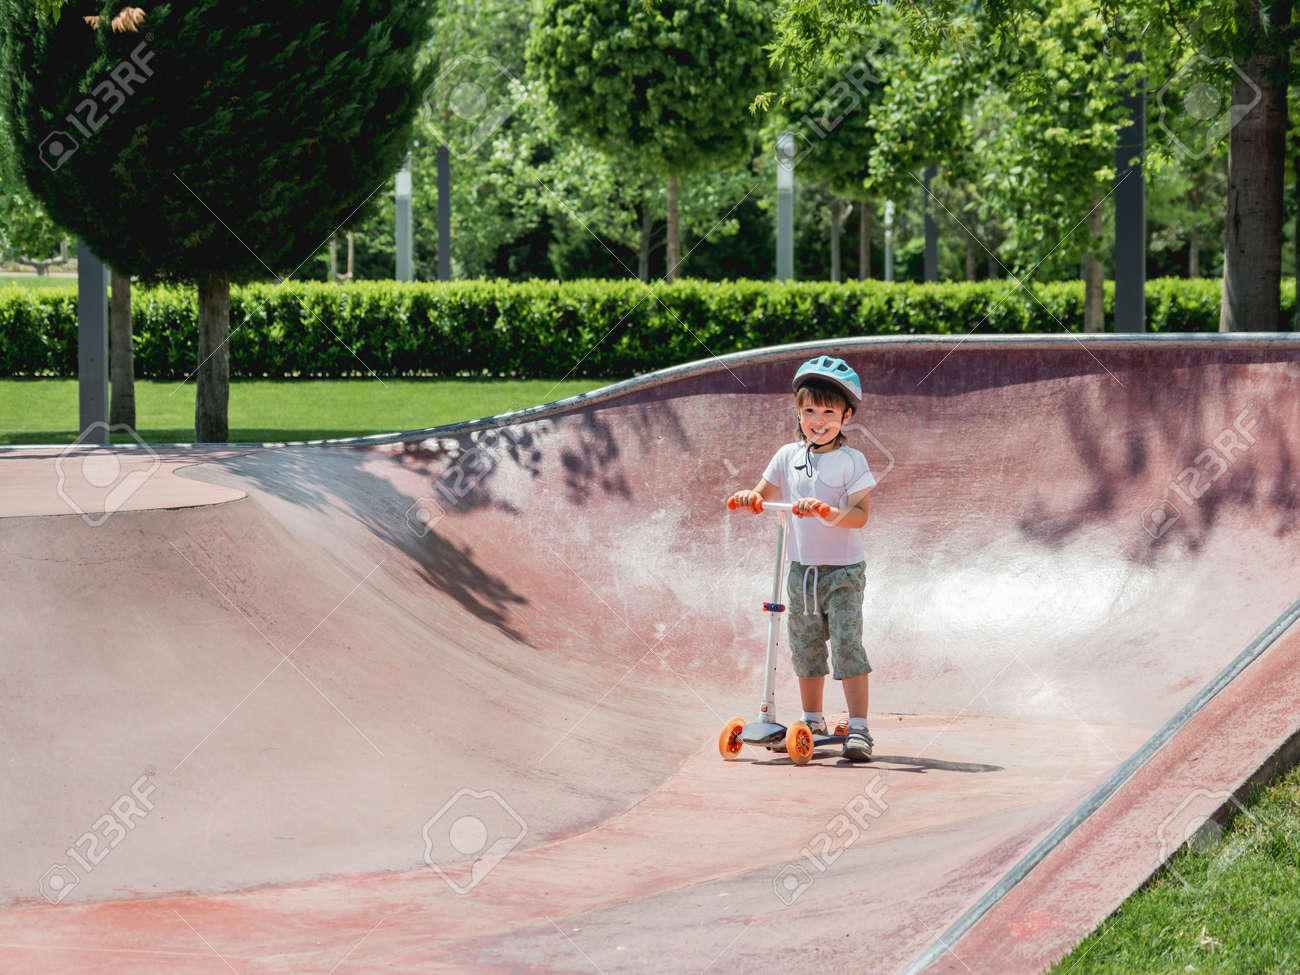 Little boy rides kick scooter in skate park. Special concrete bowl structures in urban park. Training to skate at summer. - 172806598